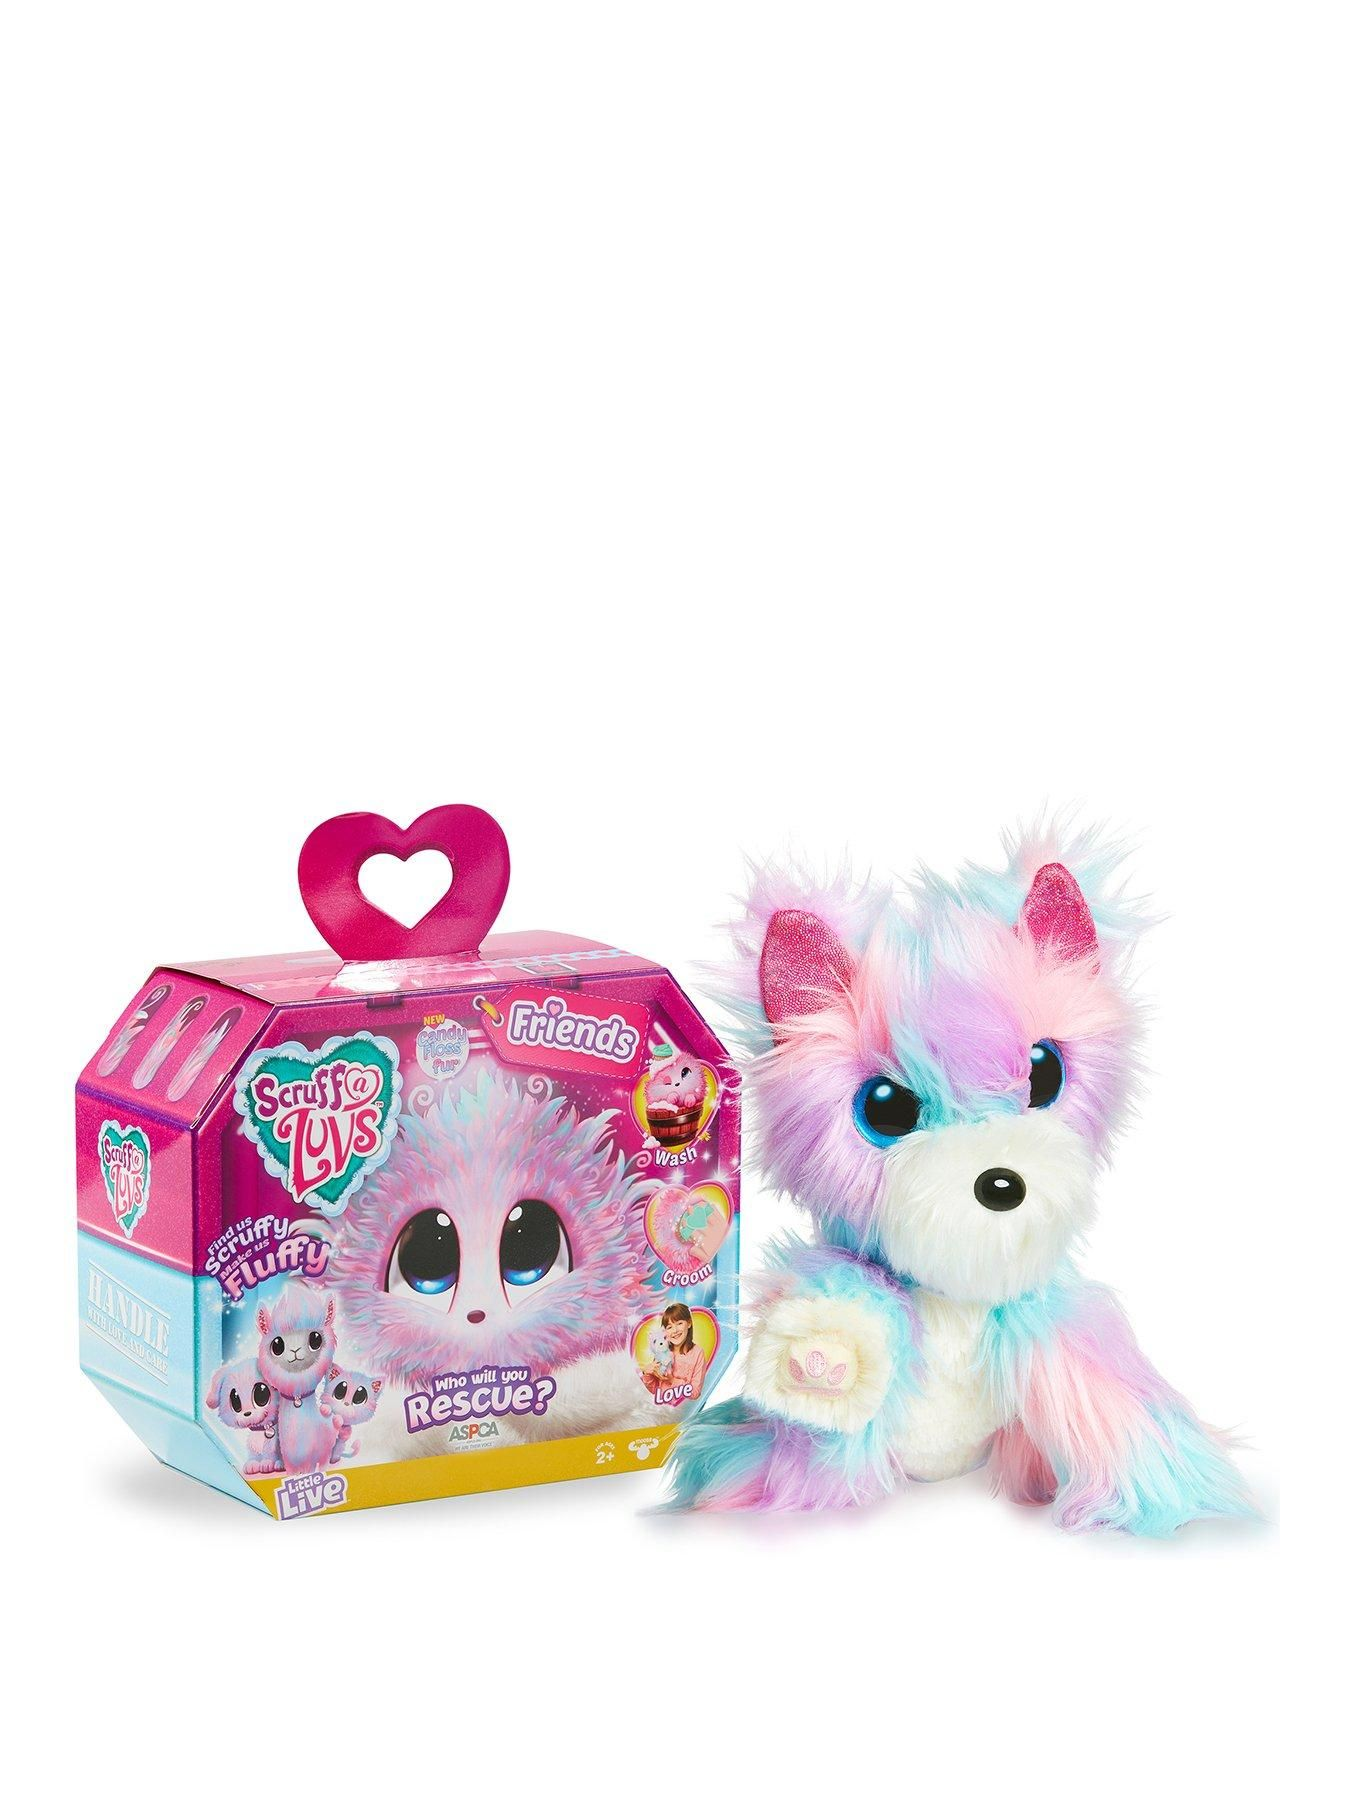 Very Womens Mens And Kids Fashion Furniture Electricals More Baby Girl Toys Lol Dolls American Girl Doll House